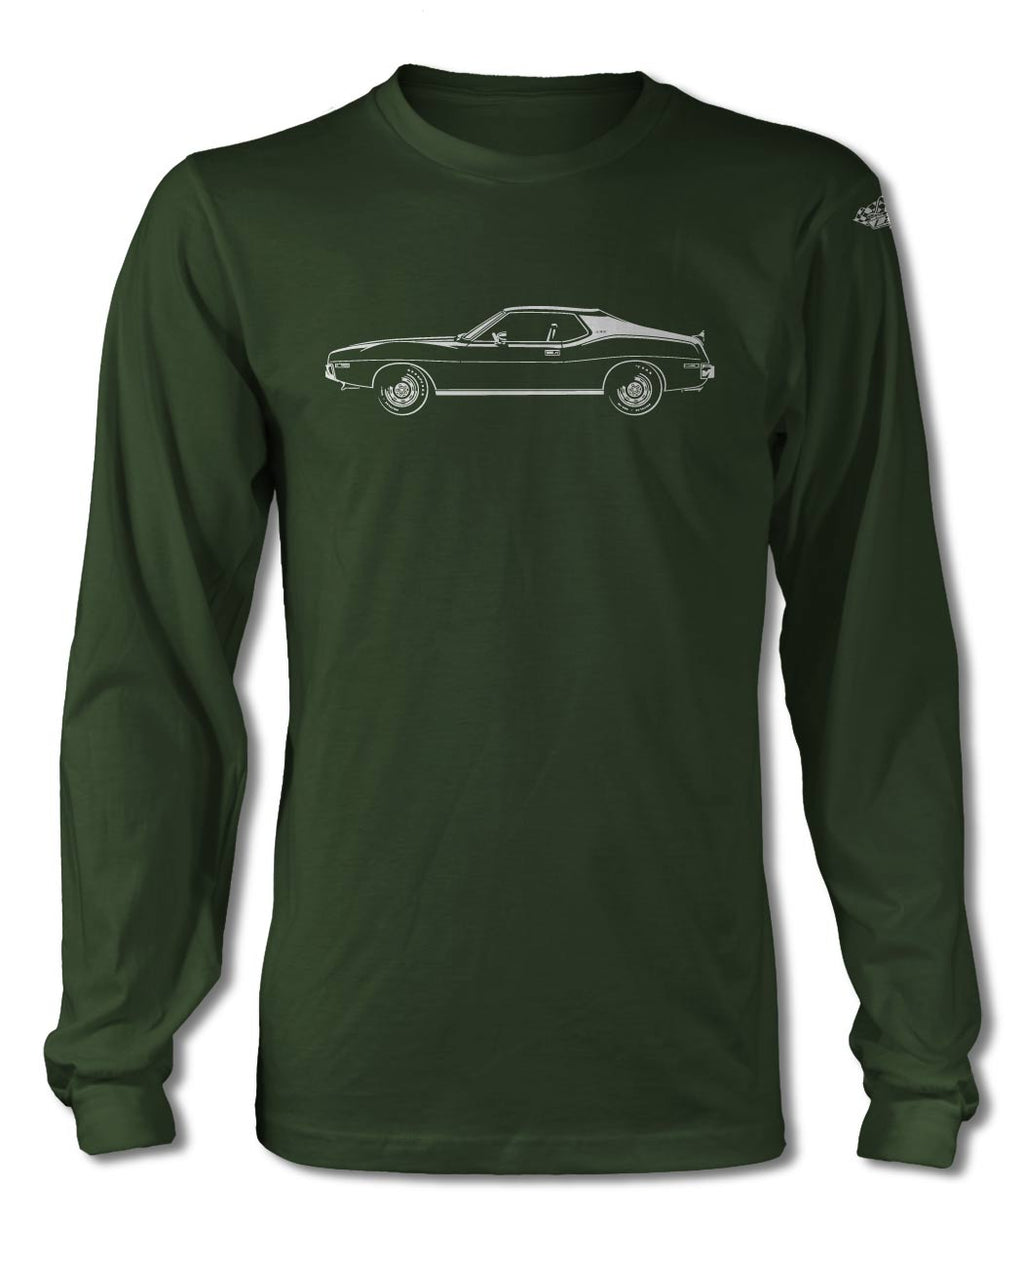 1973 AMC AMX Coupe T-Shirt - Long Sleeves - Side View